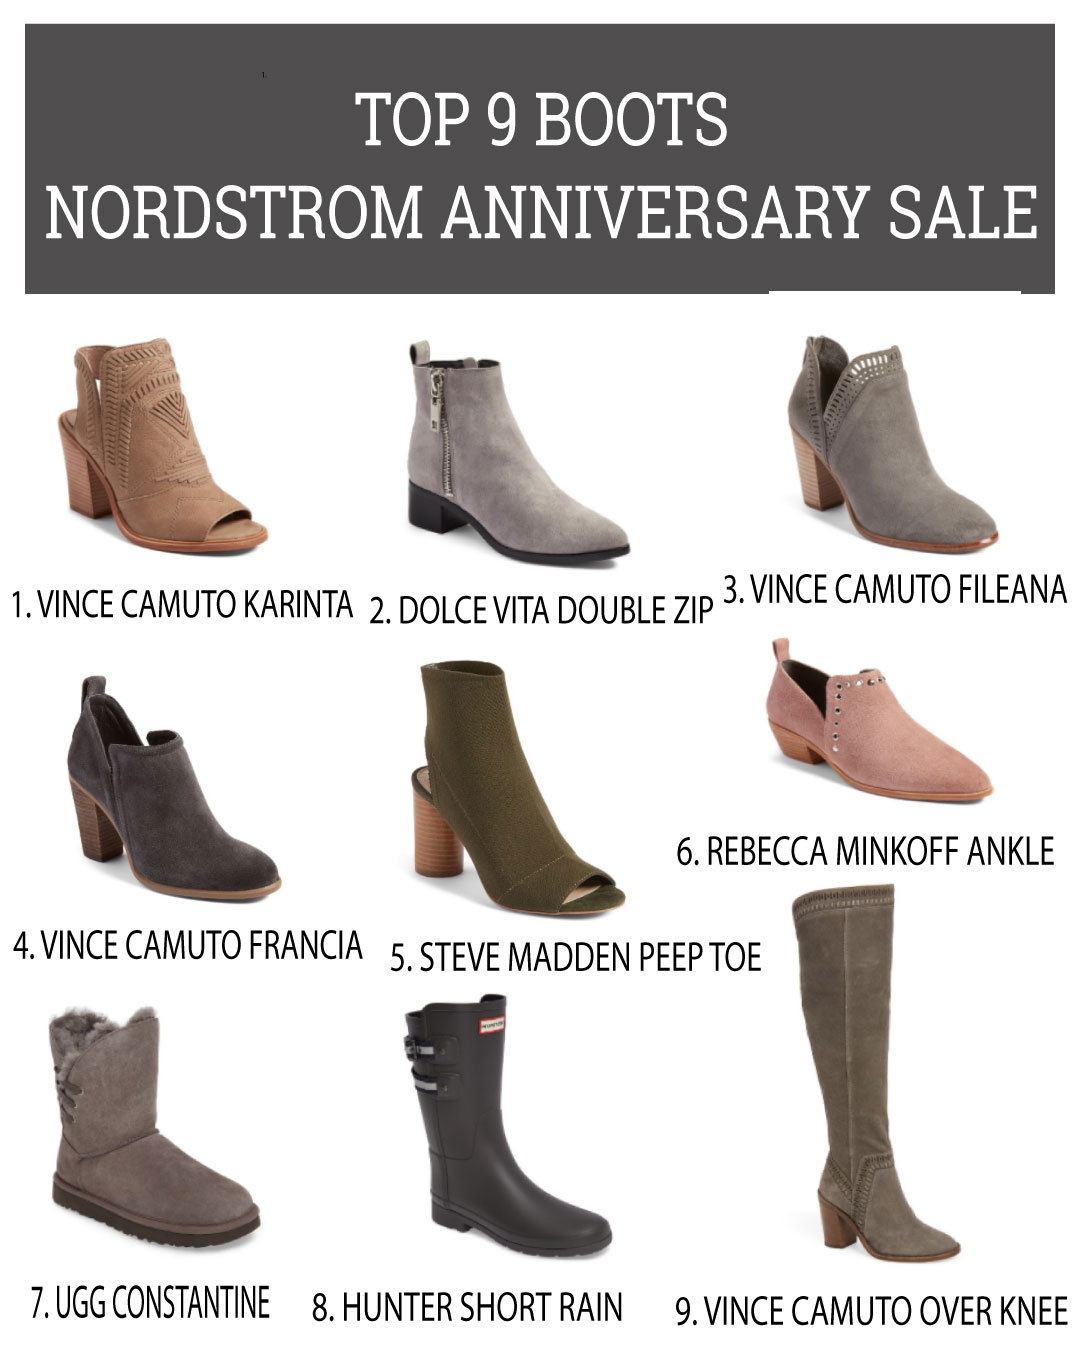 18ffa4cf13f 2017 Nordstrom Anniversary Sale Best Boots- Life By Lee